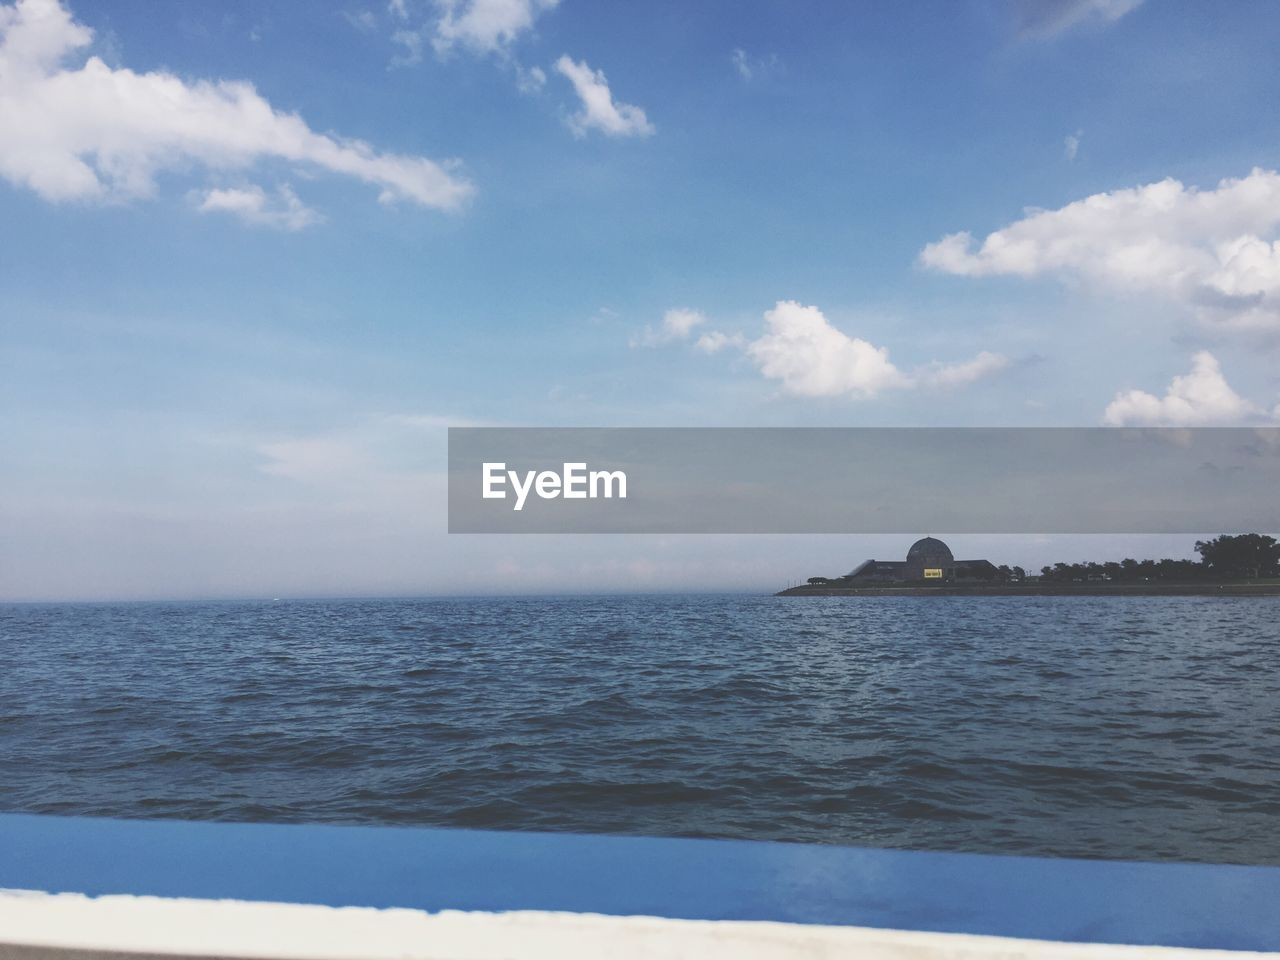 sea, sky, cloud - sky, scenics, water, tranquility, nature, beauty in nature, tranquil scene, outdoors, horizon over water, no people, day, waterfront, travel destinations, beach, architecture